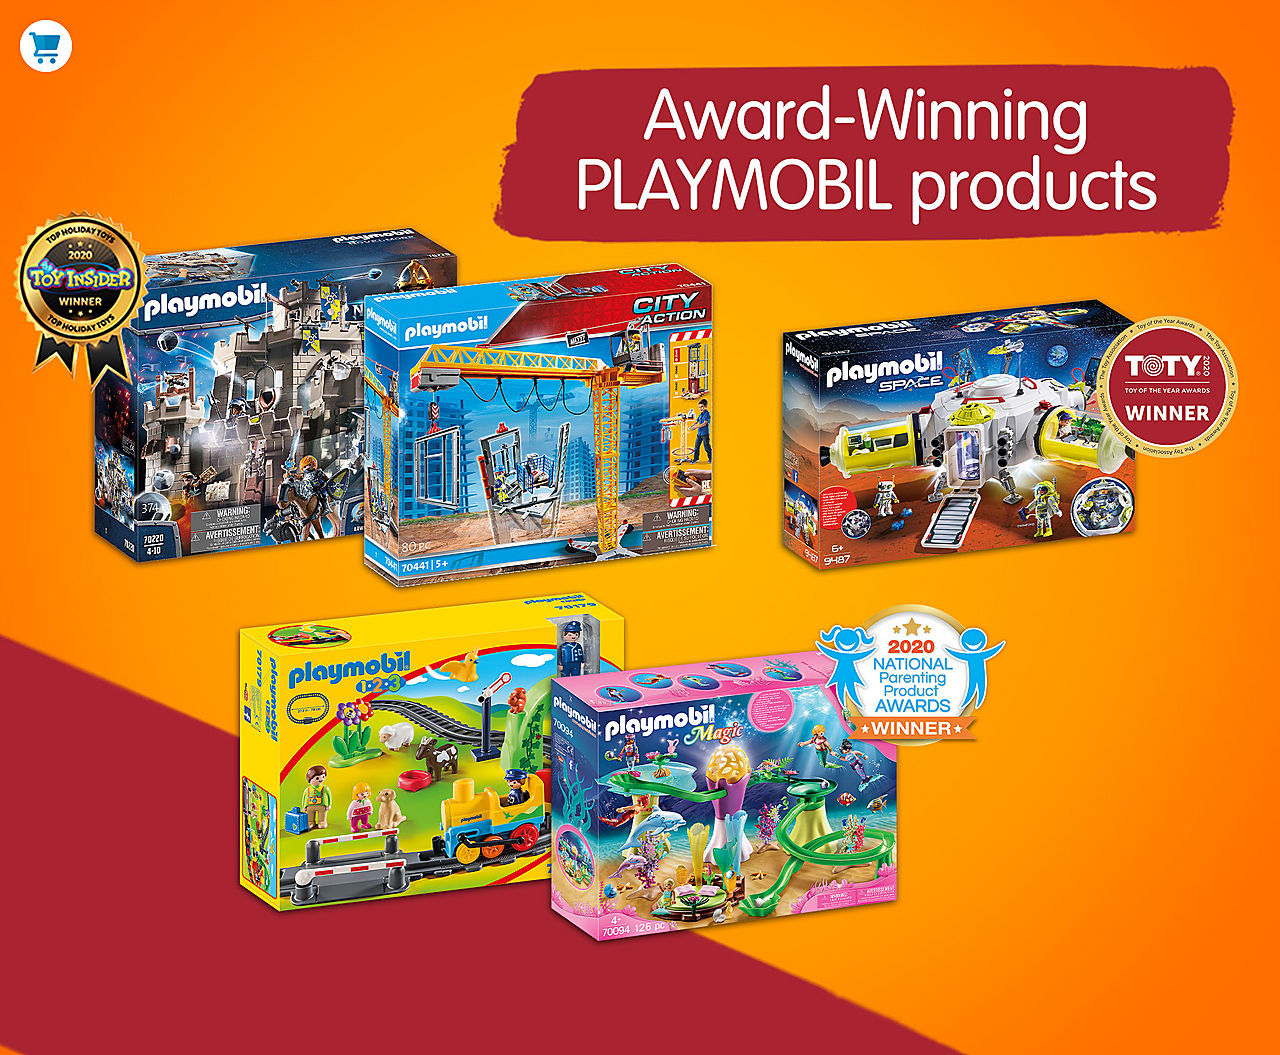 discover our excellent play sets each one a winner such as 70220 Novelmore or 70094 Mermaid Cove with Illuminated Dome